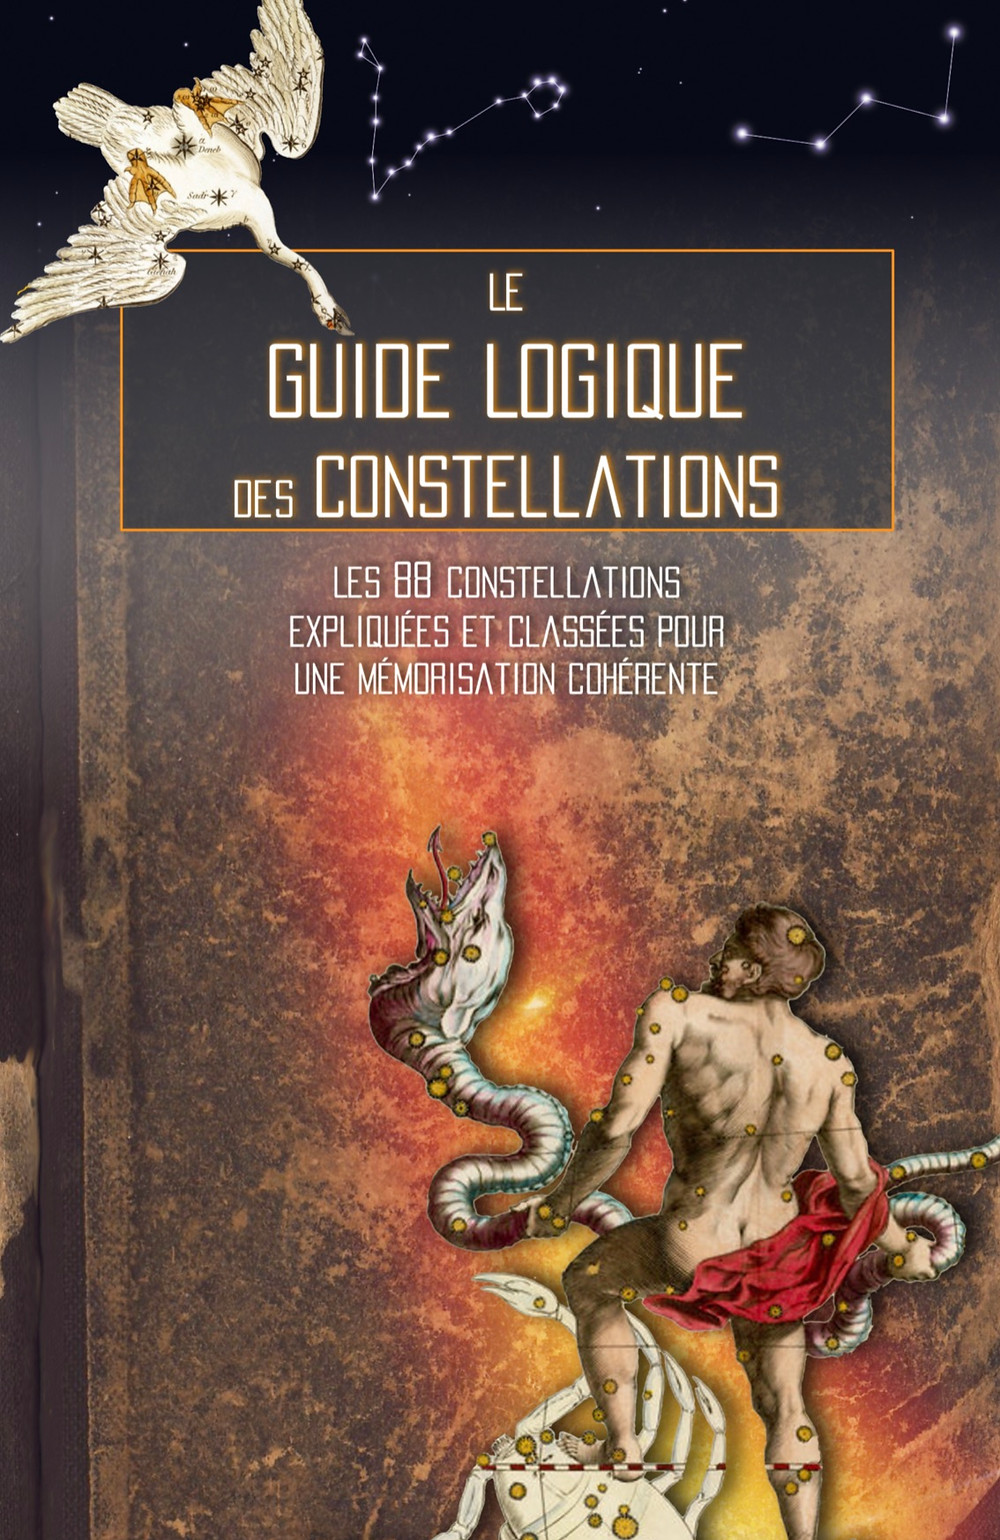 Le Guide Logique des Constellations